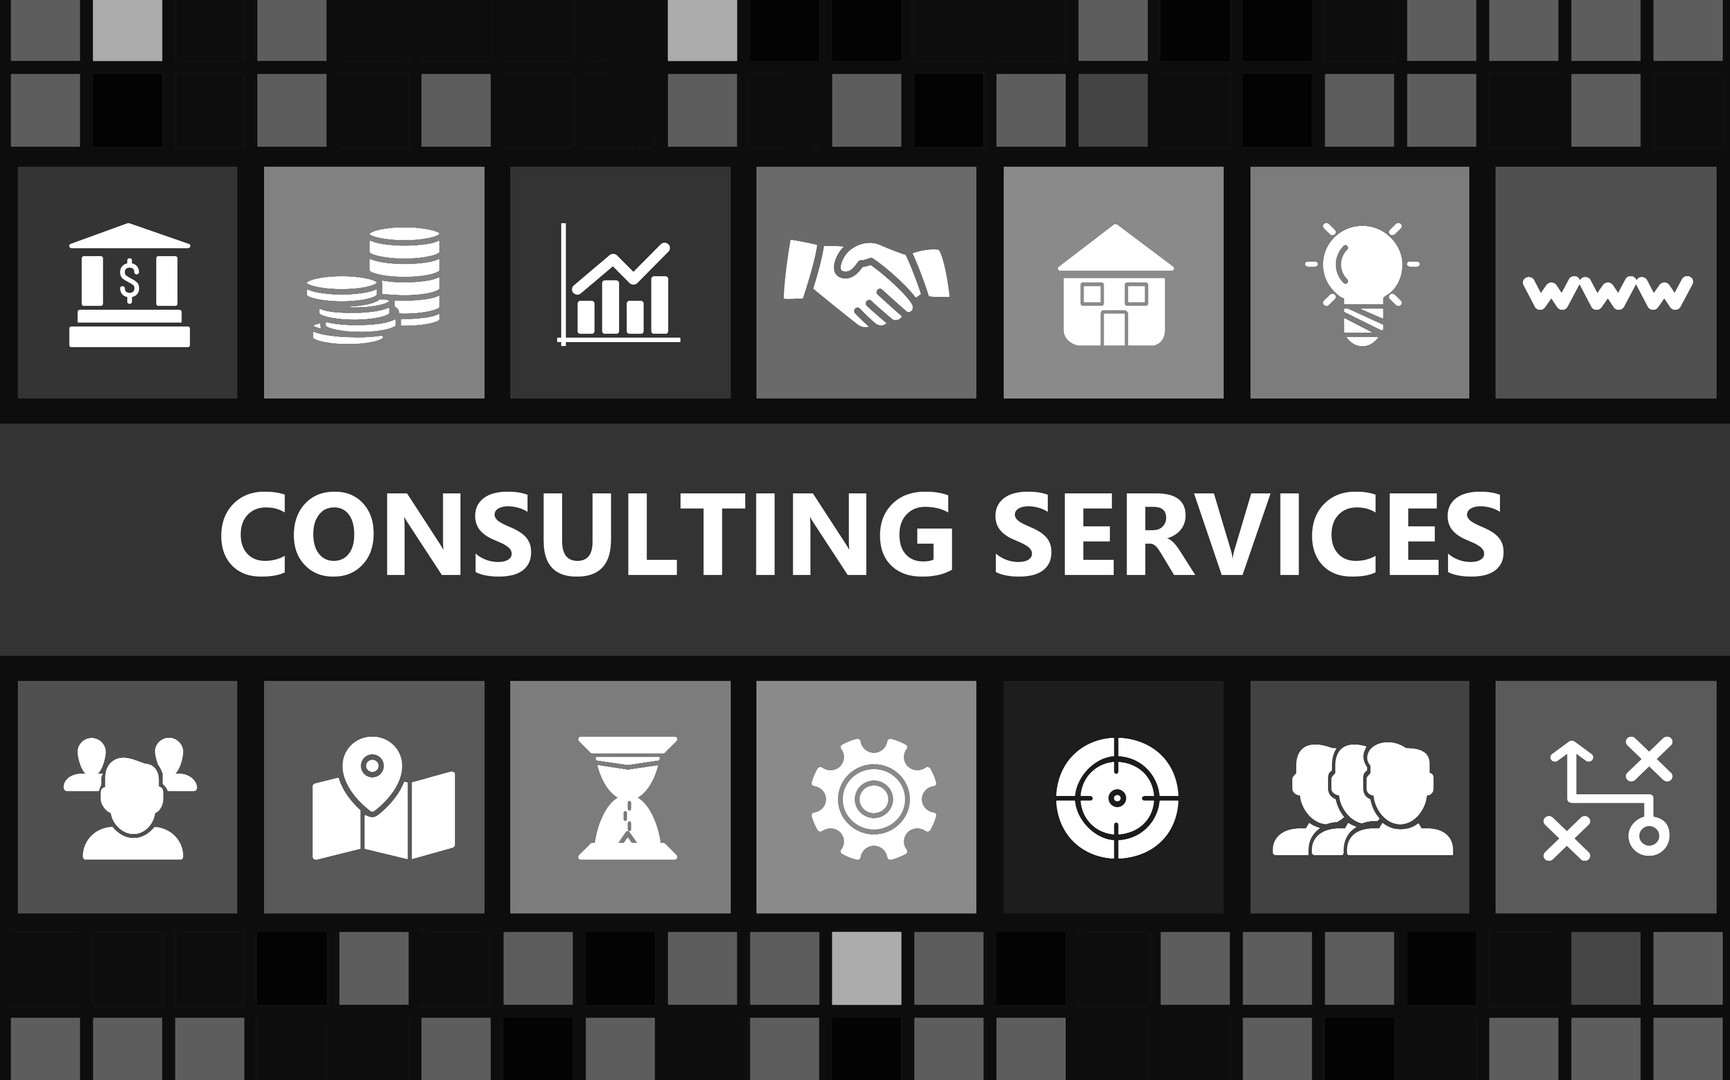 1200x775 Consulting Services.jpg